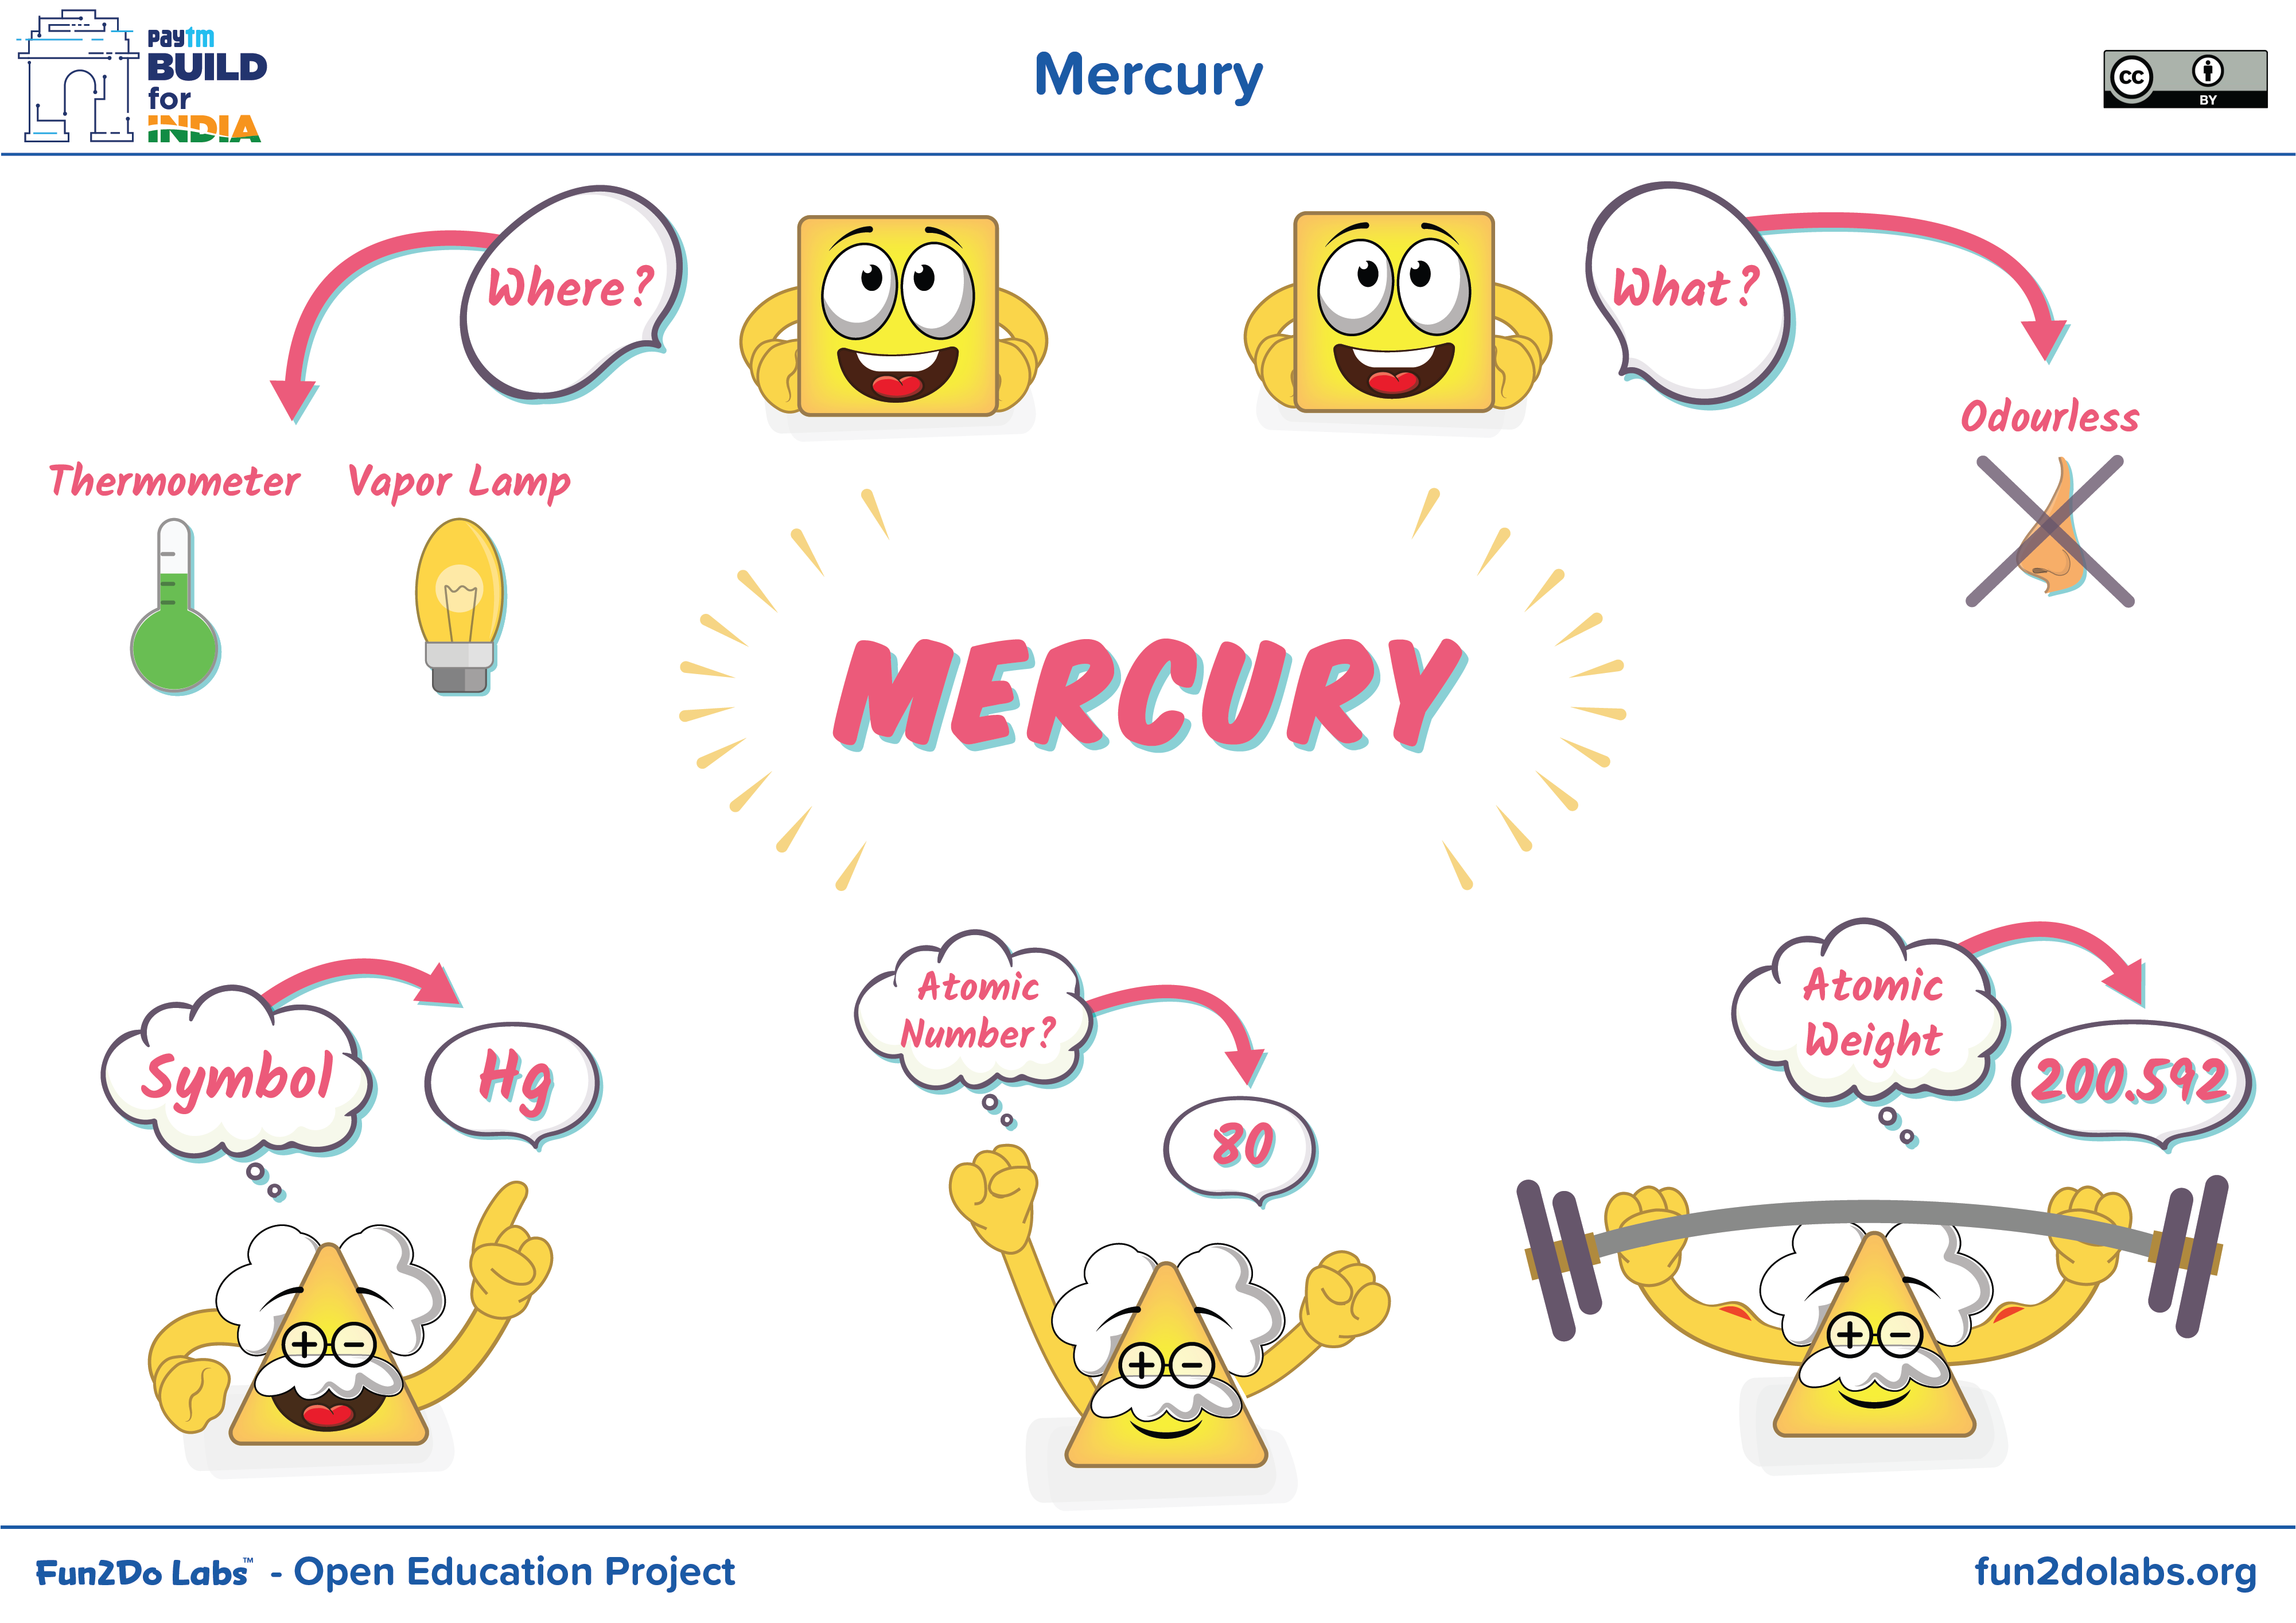 You Can Use This Image For Introducing Mercury To Kids Where Is